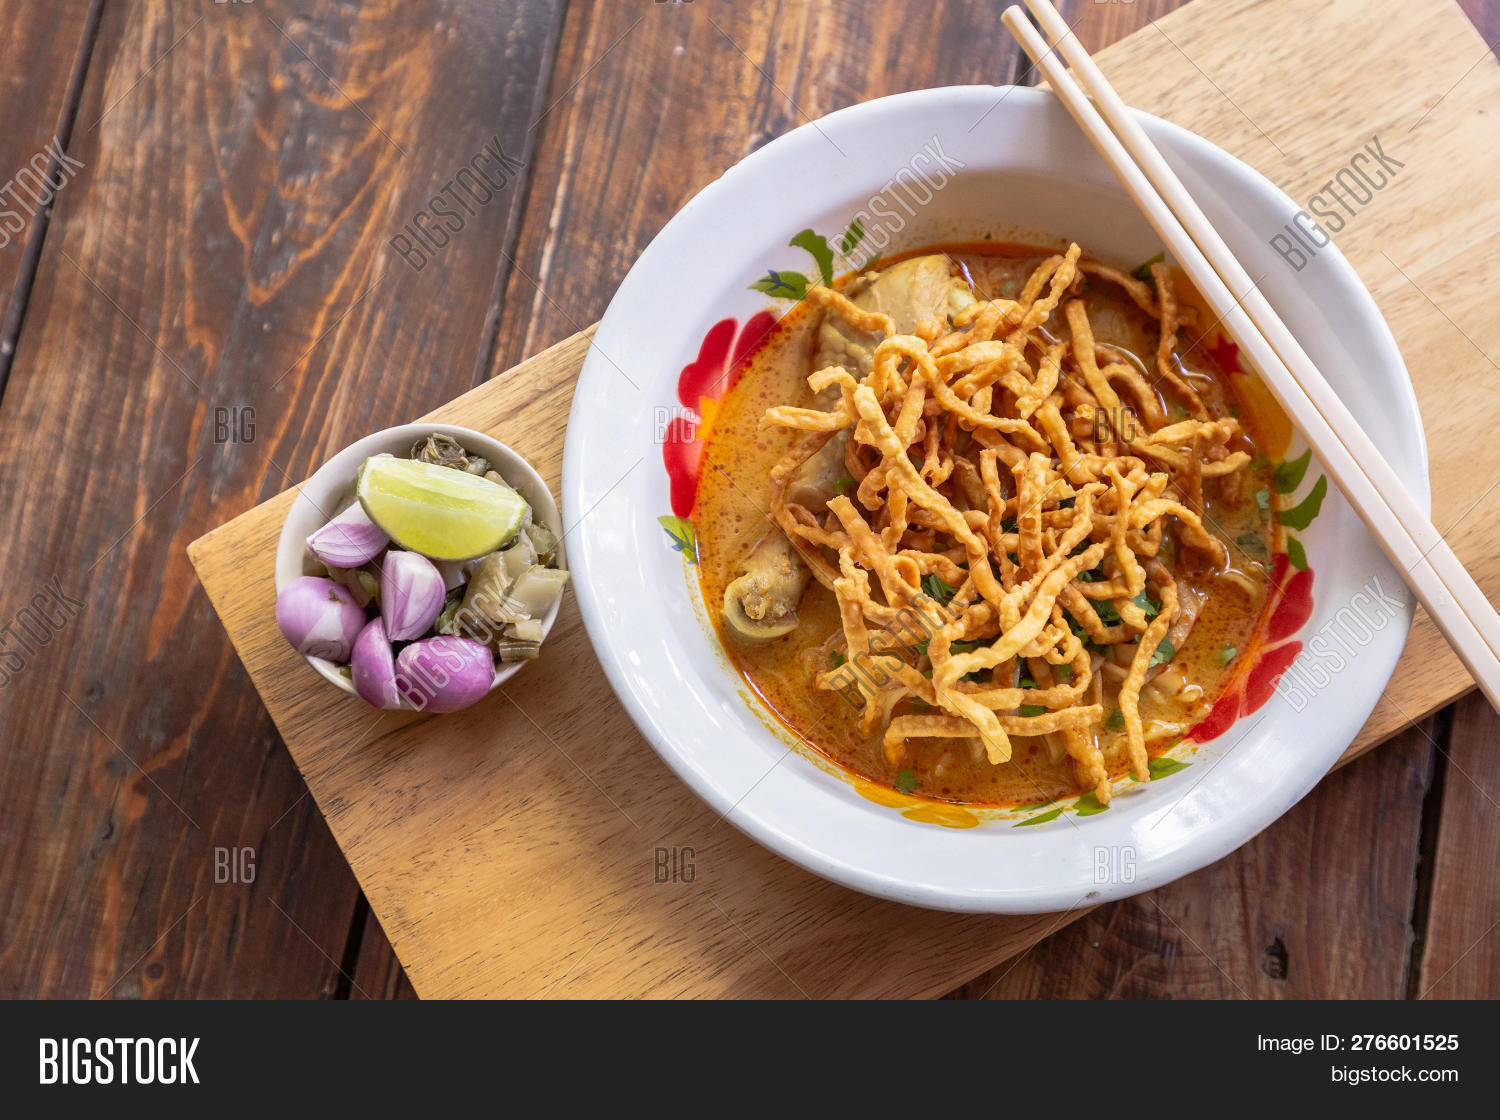 asia,asian,background,beautiful,bowl,chicken,chili,closeup,coconut,cooking,cuisine,culture,curried,curry,delicious,dinner,dish,food,gourmet,healthy,herb,high,hot,kao,khao,kitchen,lemon,lunch,meal,milk,noodle,northern,onion,oriental,recipe,red,sauce,soi,soup,soy,spicy,tasty,thai,thailand,top,traditional,view,white,yellow